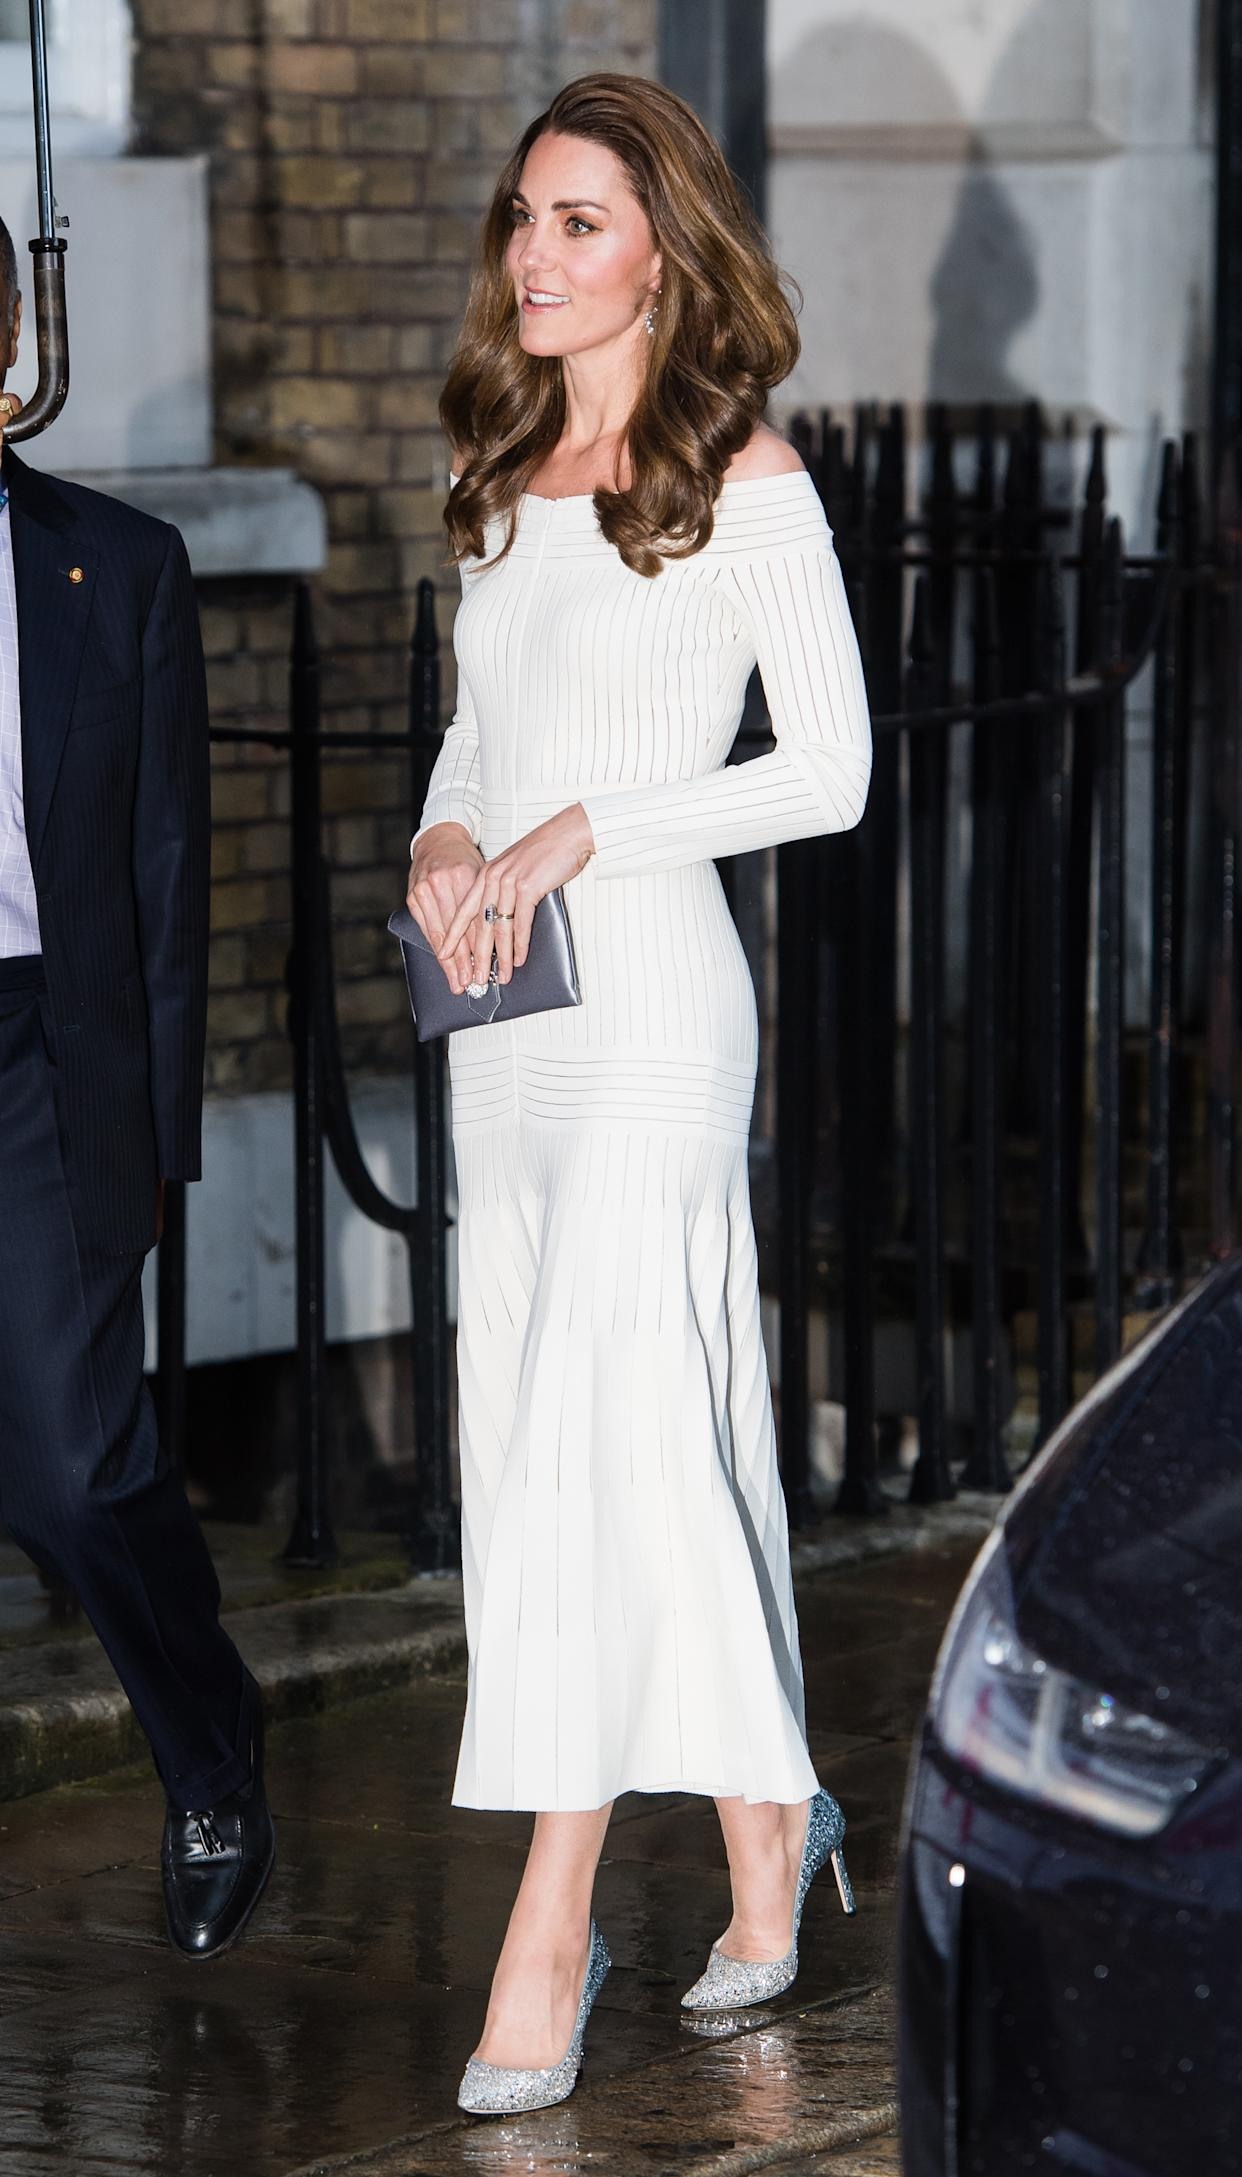 LONDON, ENGLAND - JUNE 12: Catherine, Duchess of Cambridge attends the first annual gala dinner in recognition of Addiction Awareness Week at Phillips Gallery on June 12, 2019 in London, England. HRH is Patron of Action on Addiction.  (Photo by Samir Hussein/WireImage)